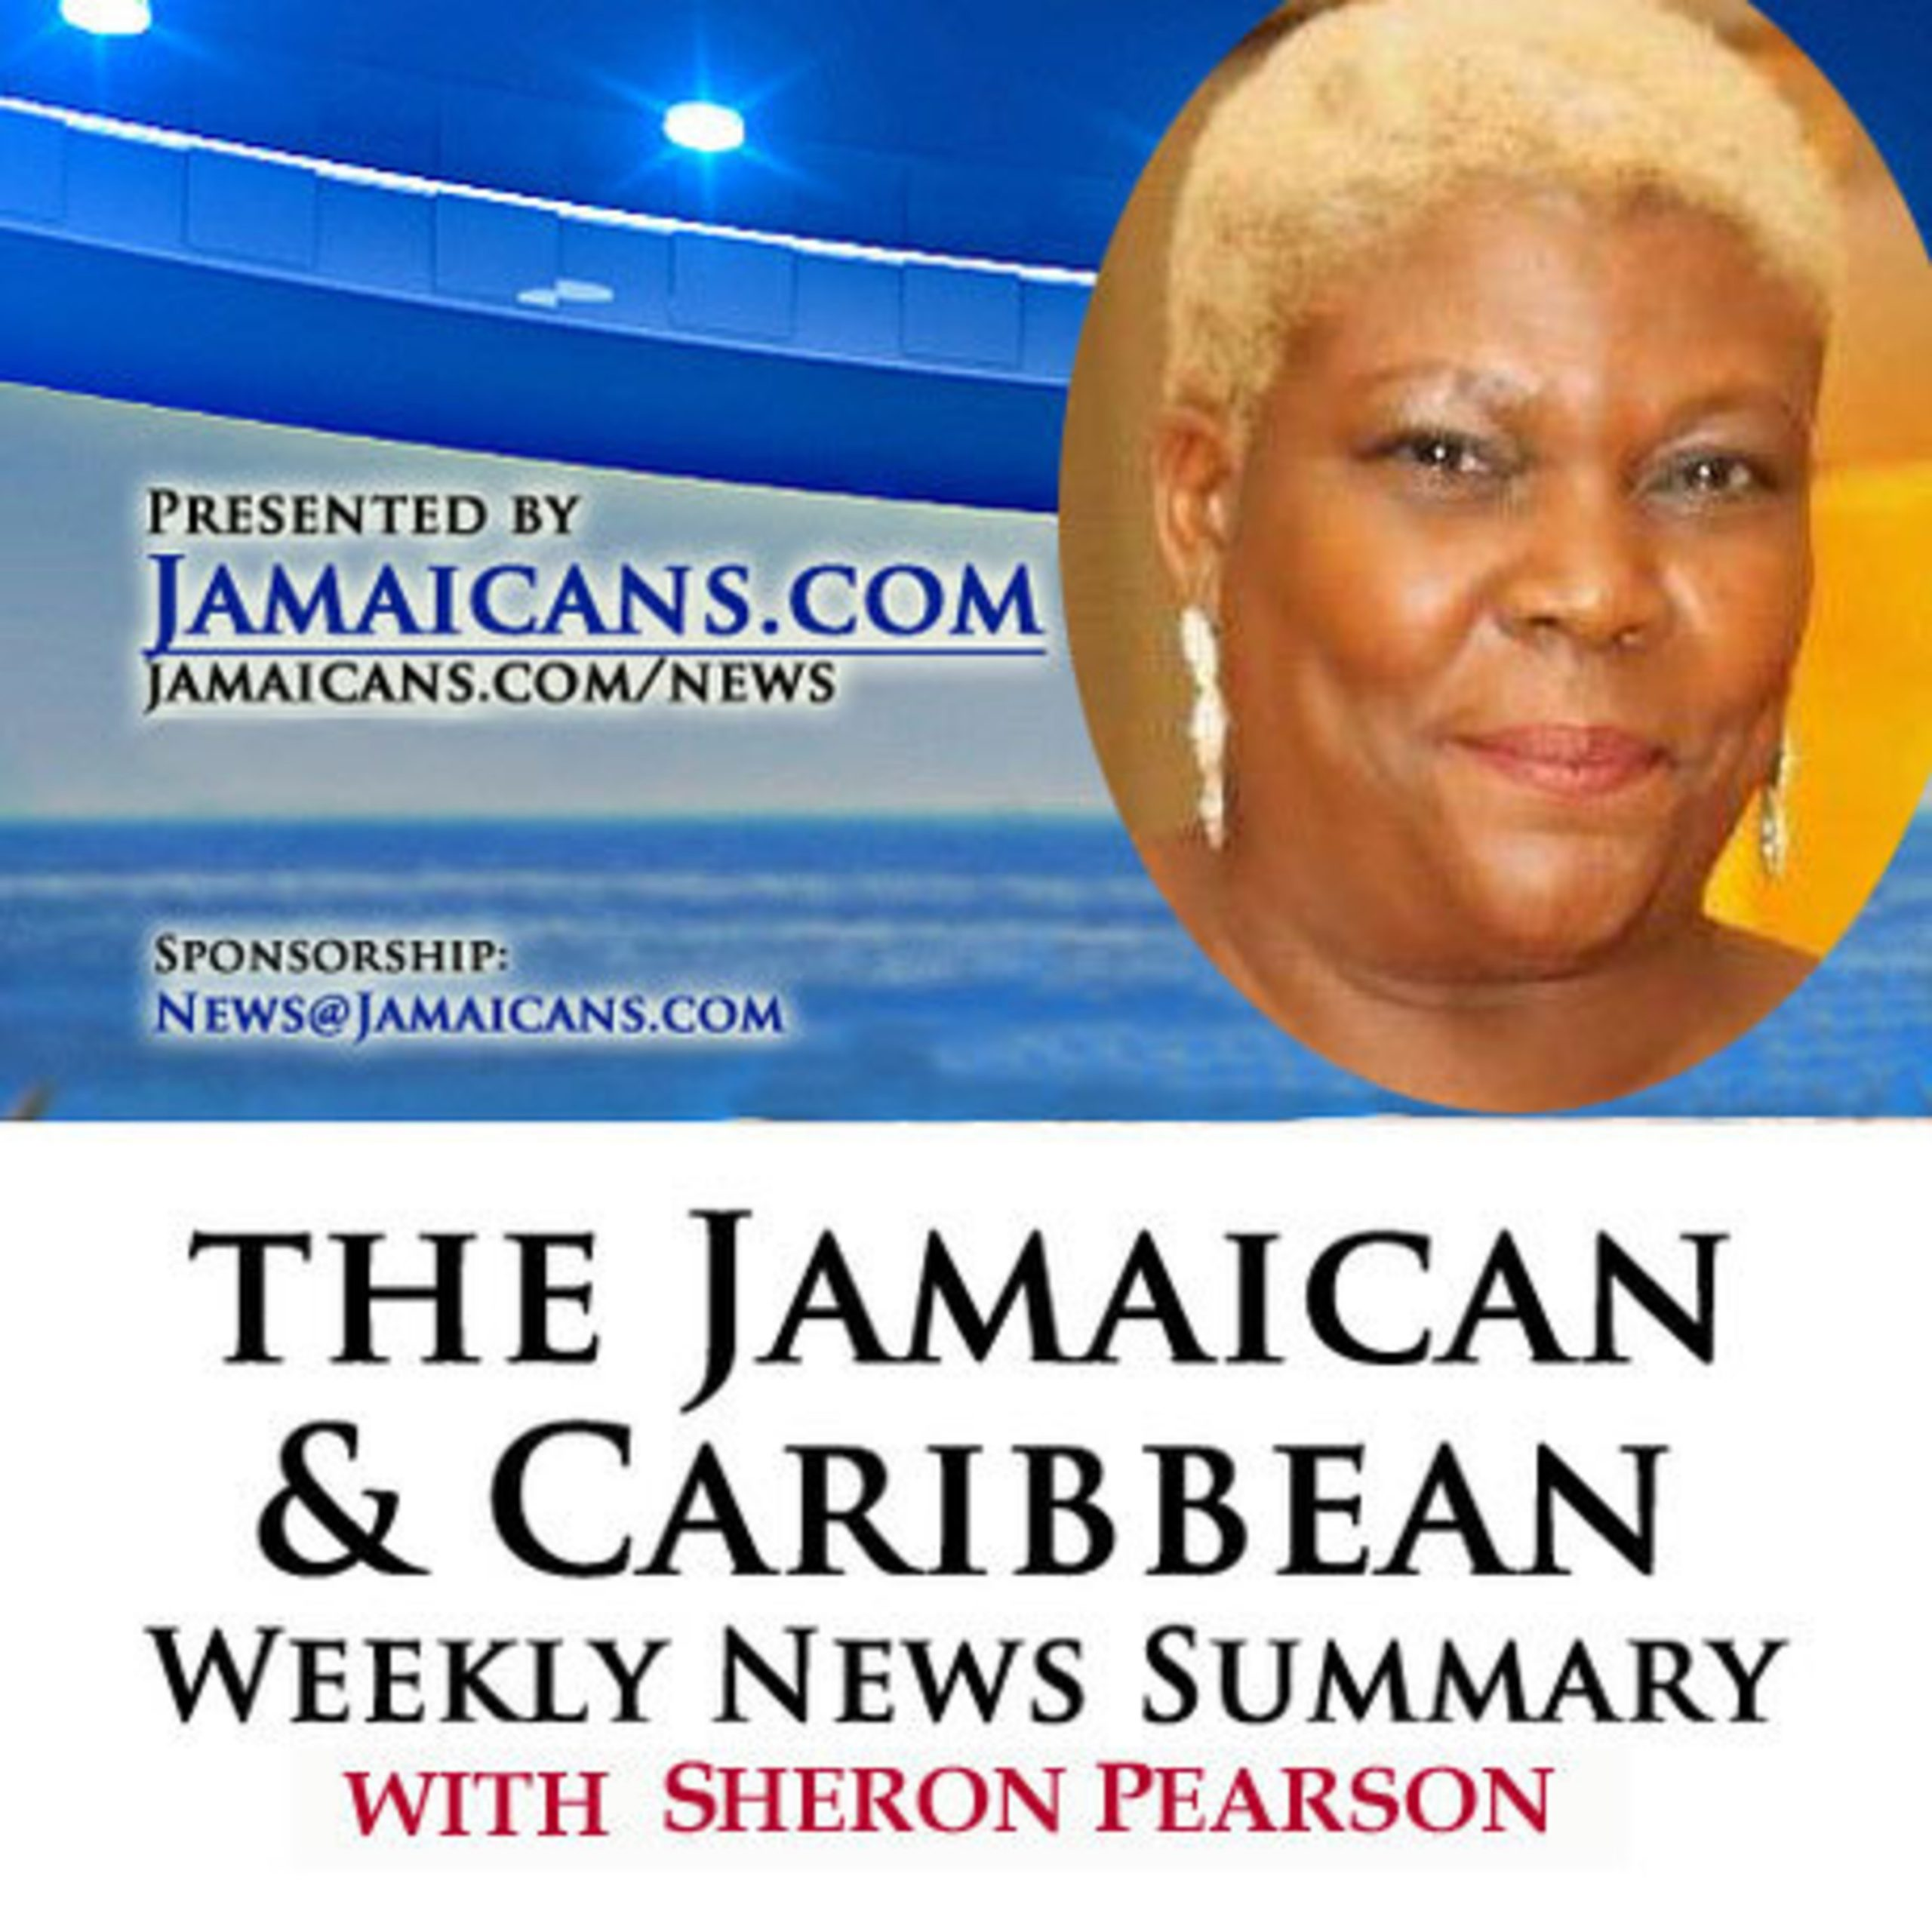 This is the Podcast of 7 Jamaican & Caribbean News Stories You May Have missed for the week ending September 20 2019.